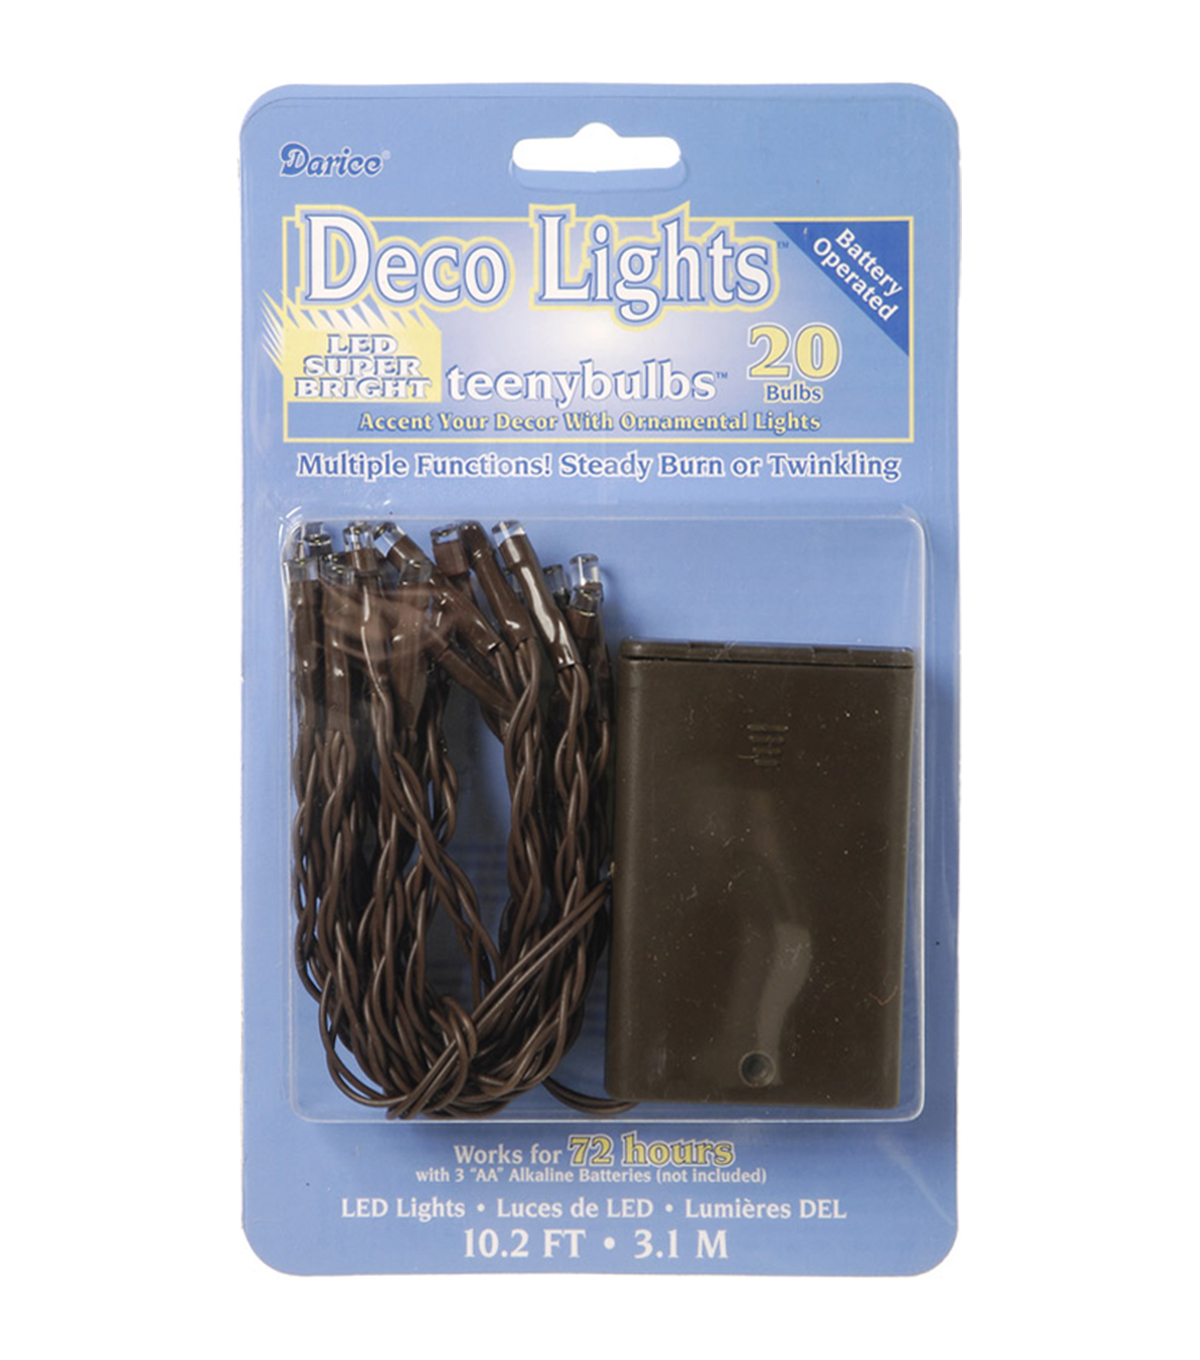 Darice 20 Ct Battery Operated Deco Lights With Teeny Bulbs-Brown